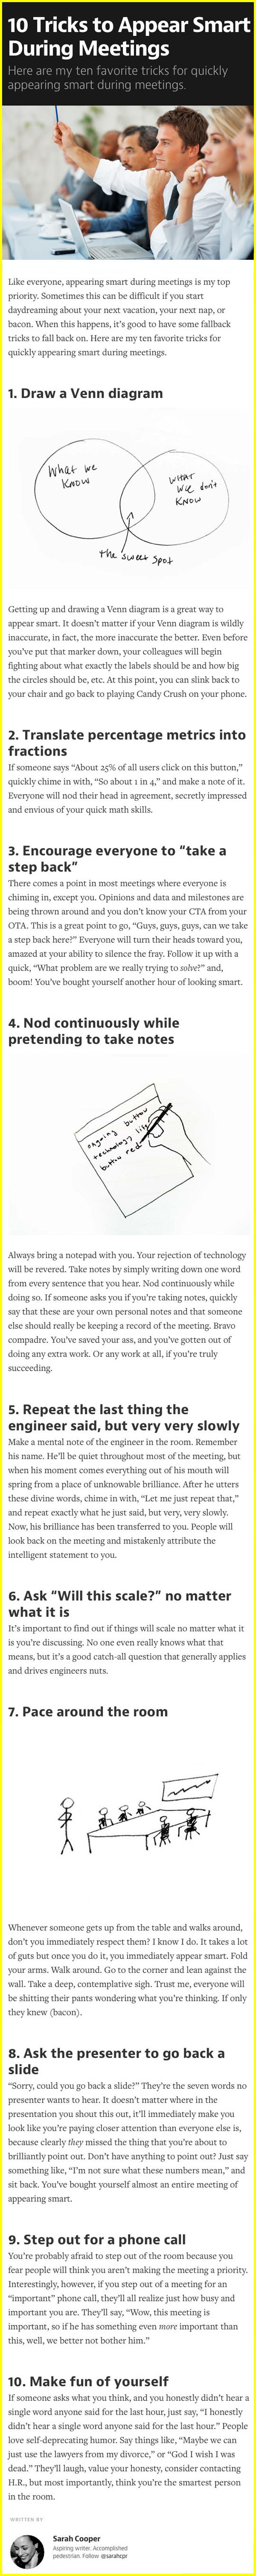 How To Easily Appear Smart During Meetings